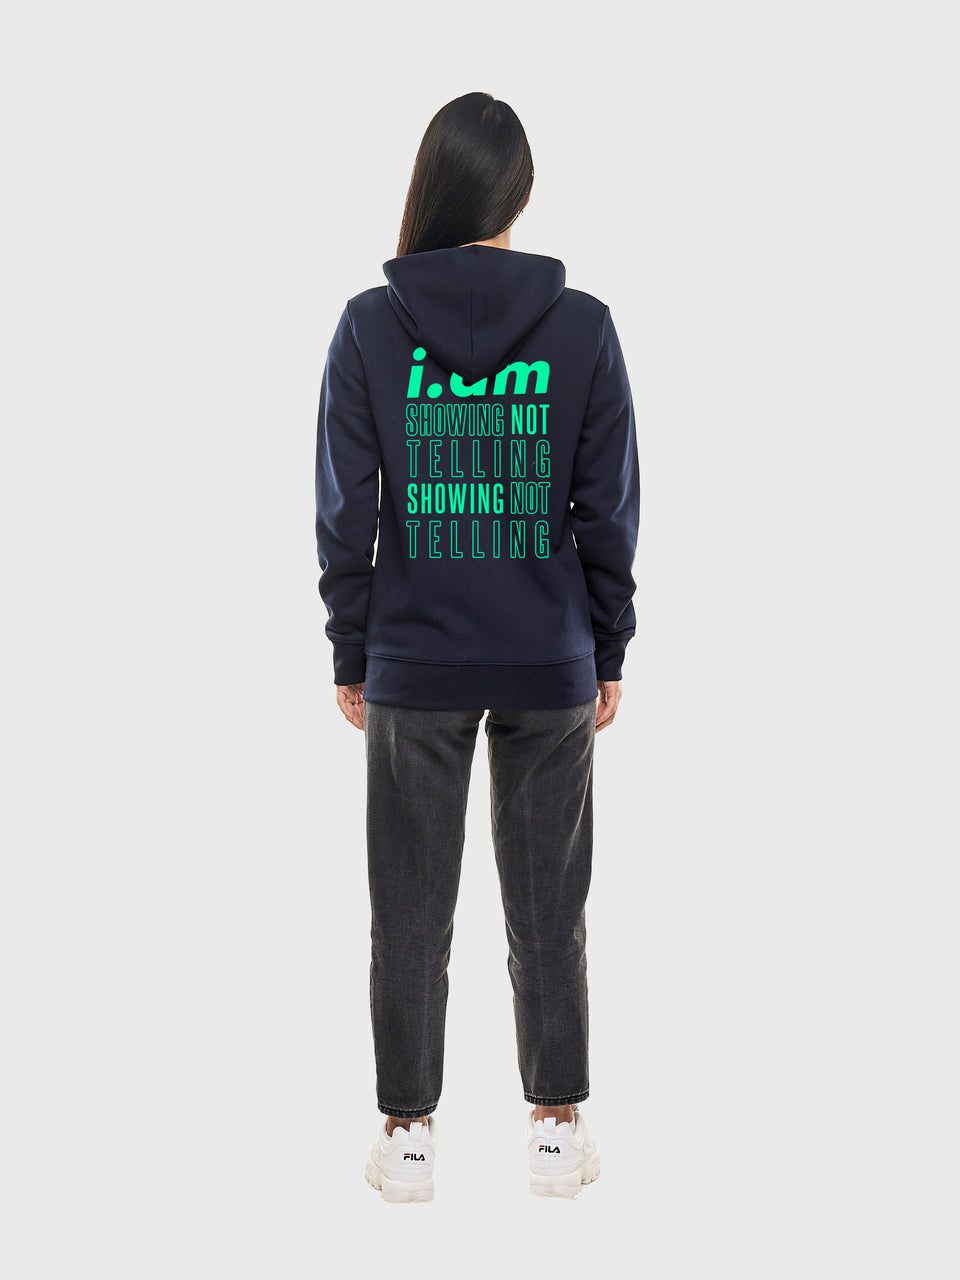 Showing not telling - Navy - Unisex pull over hoodie